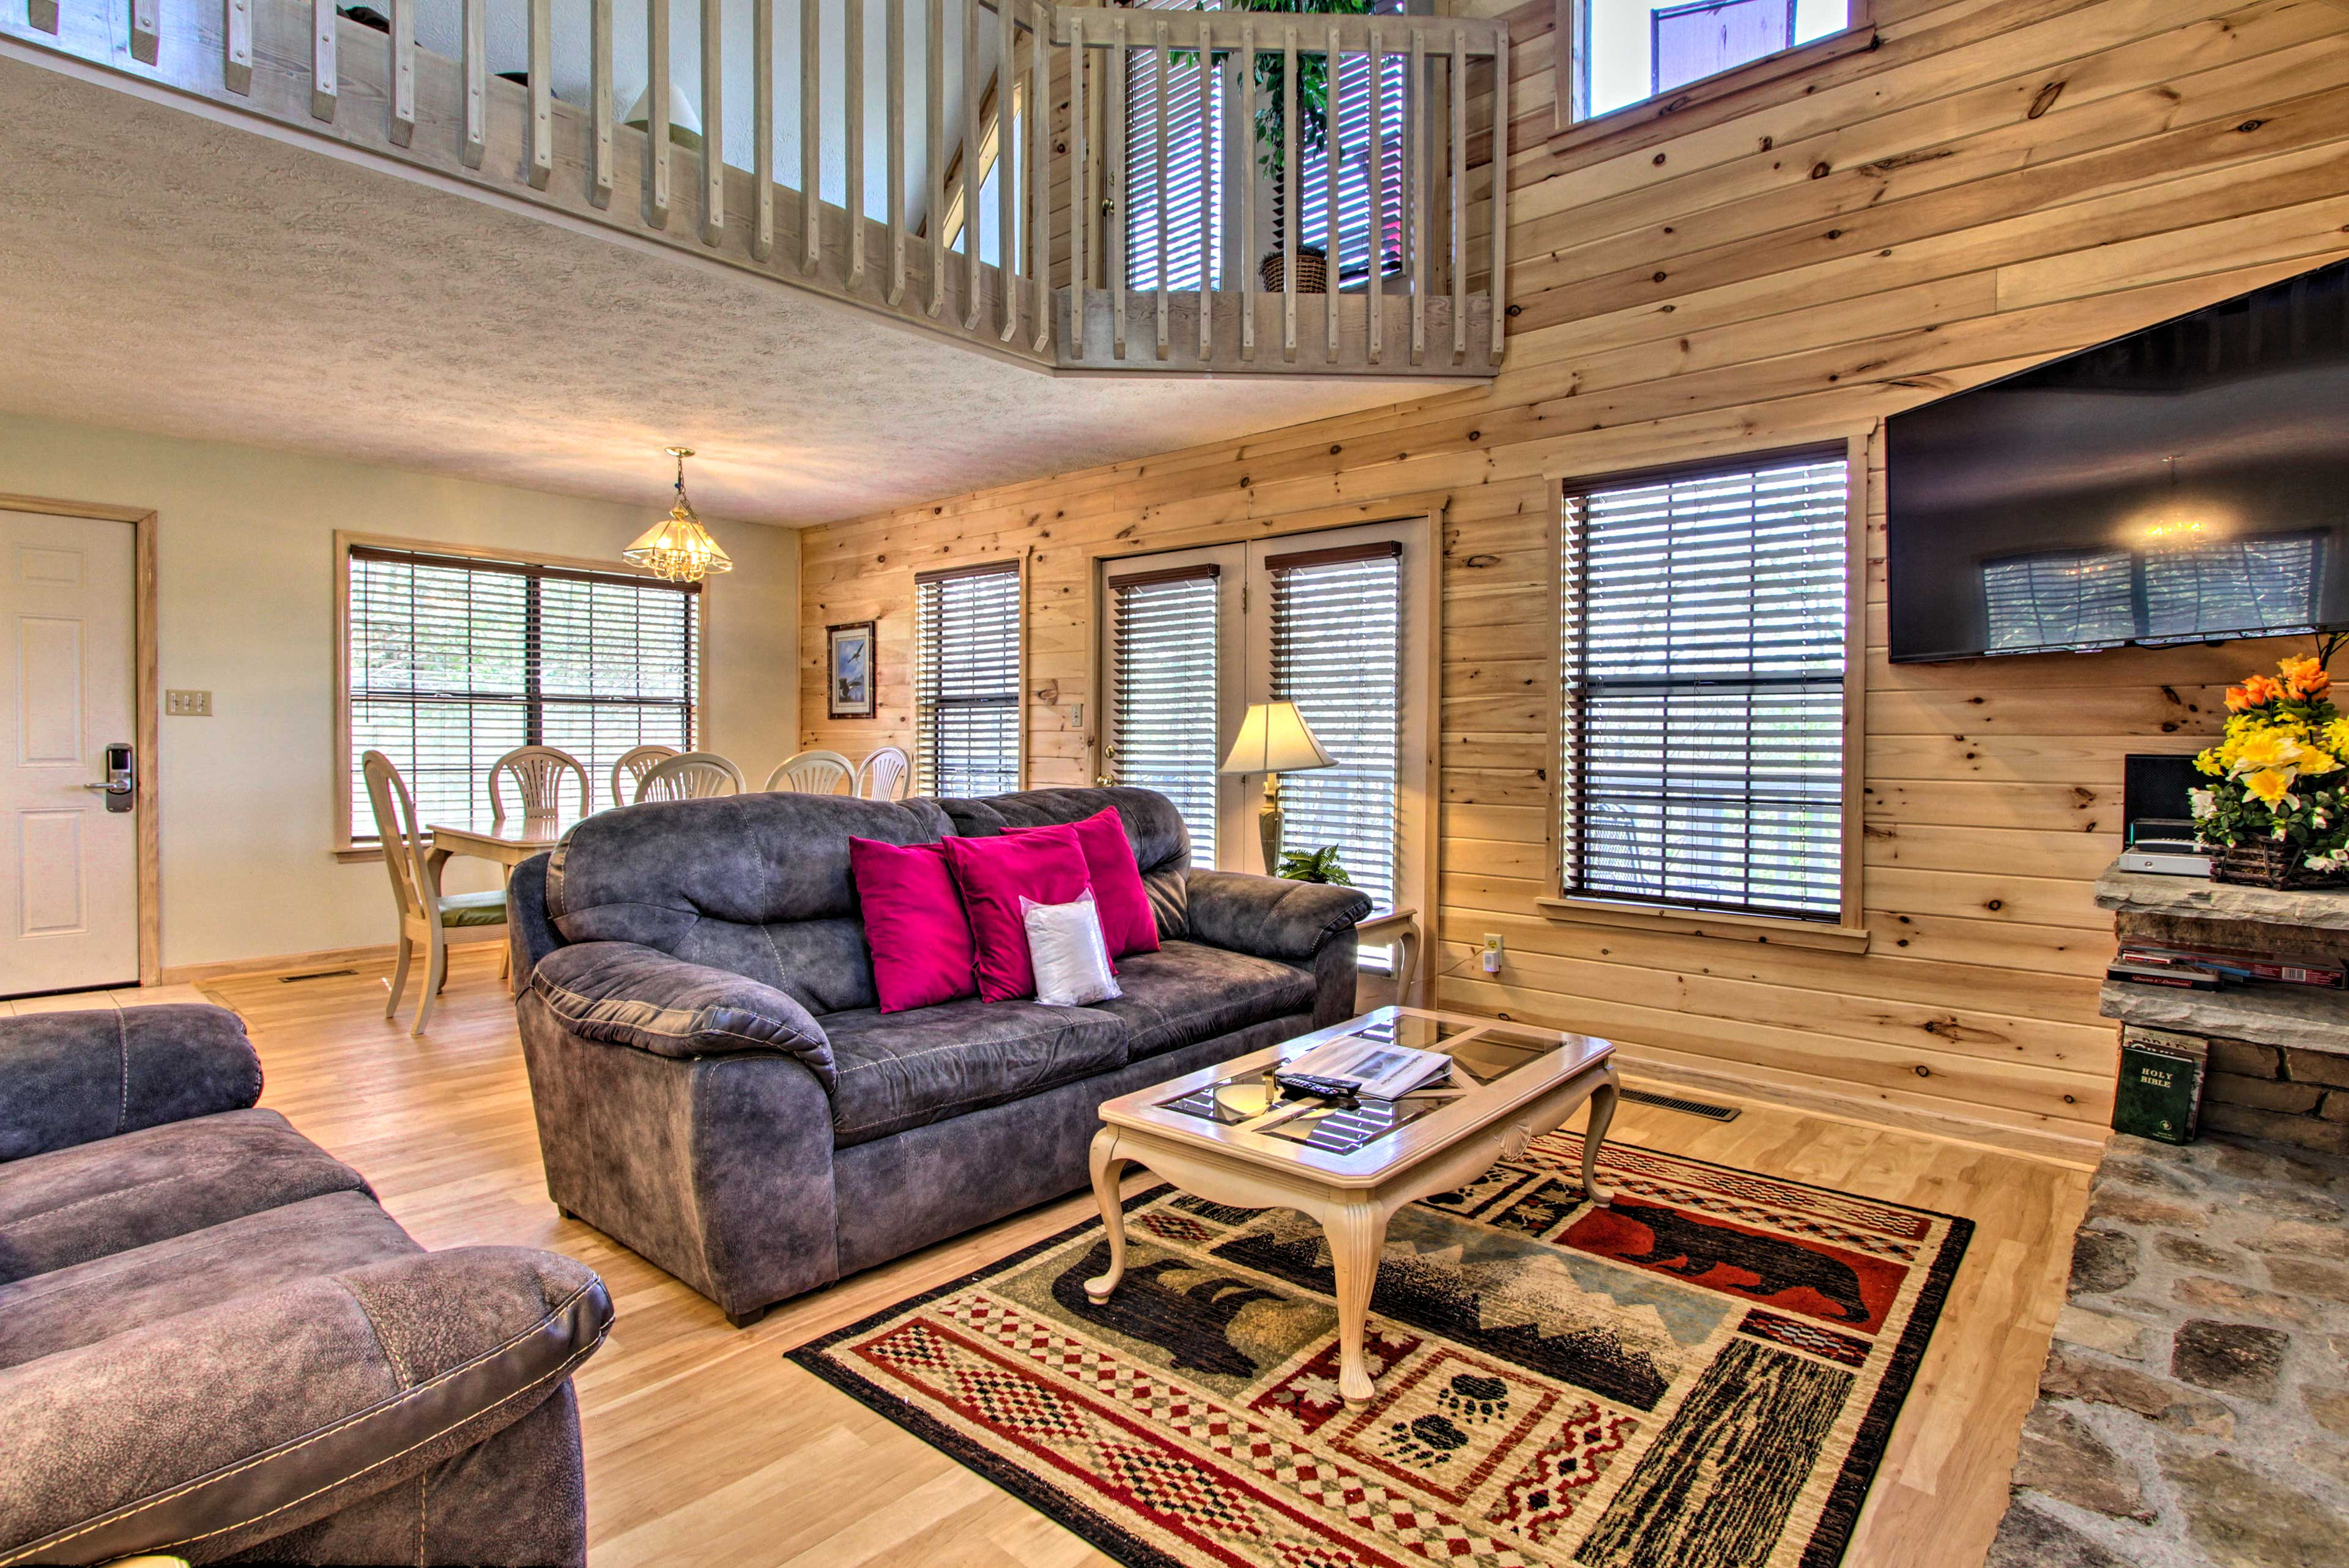 The interior boasts a long-cabin feel with all the comforts of home.